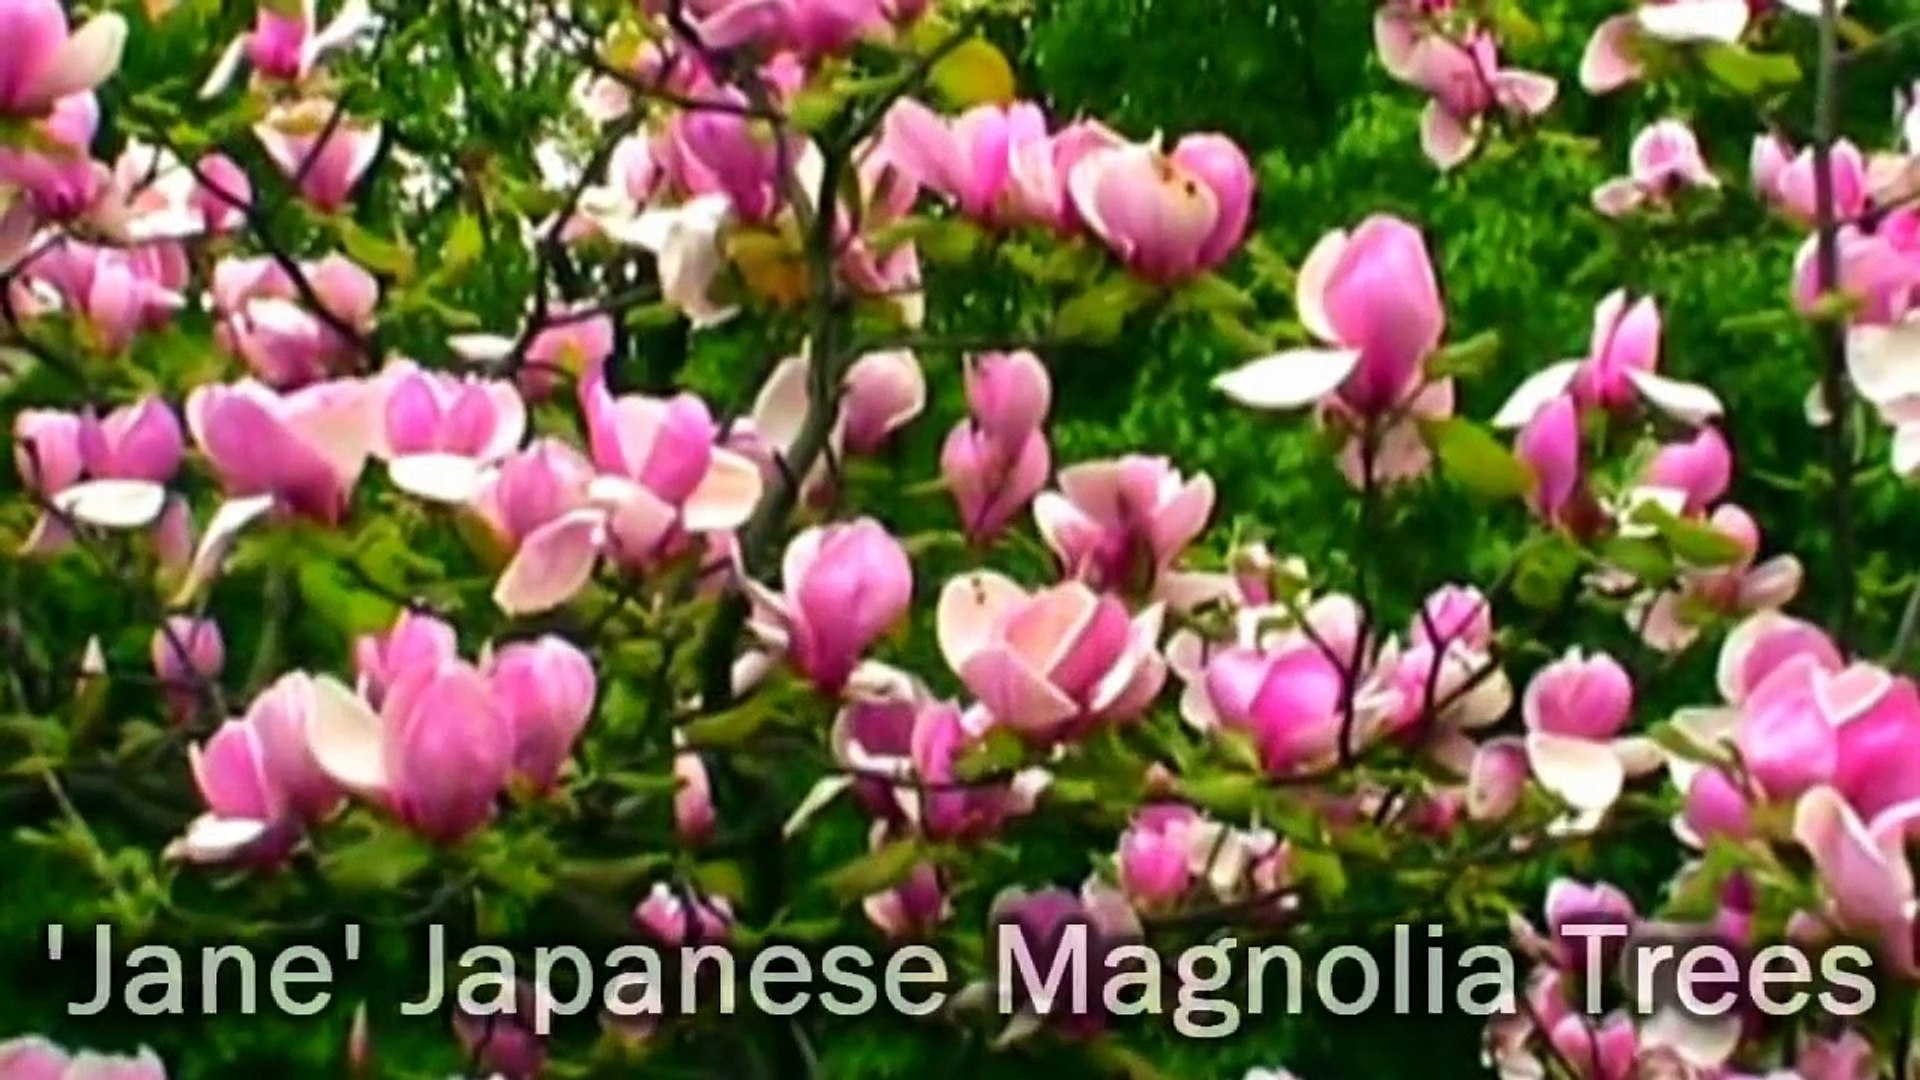 Jane Japanese Magnolia Flowering Tree Huge Pink Fragrant